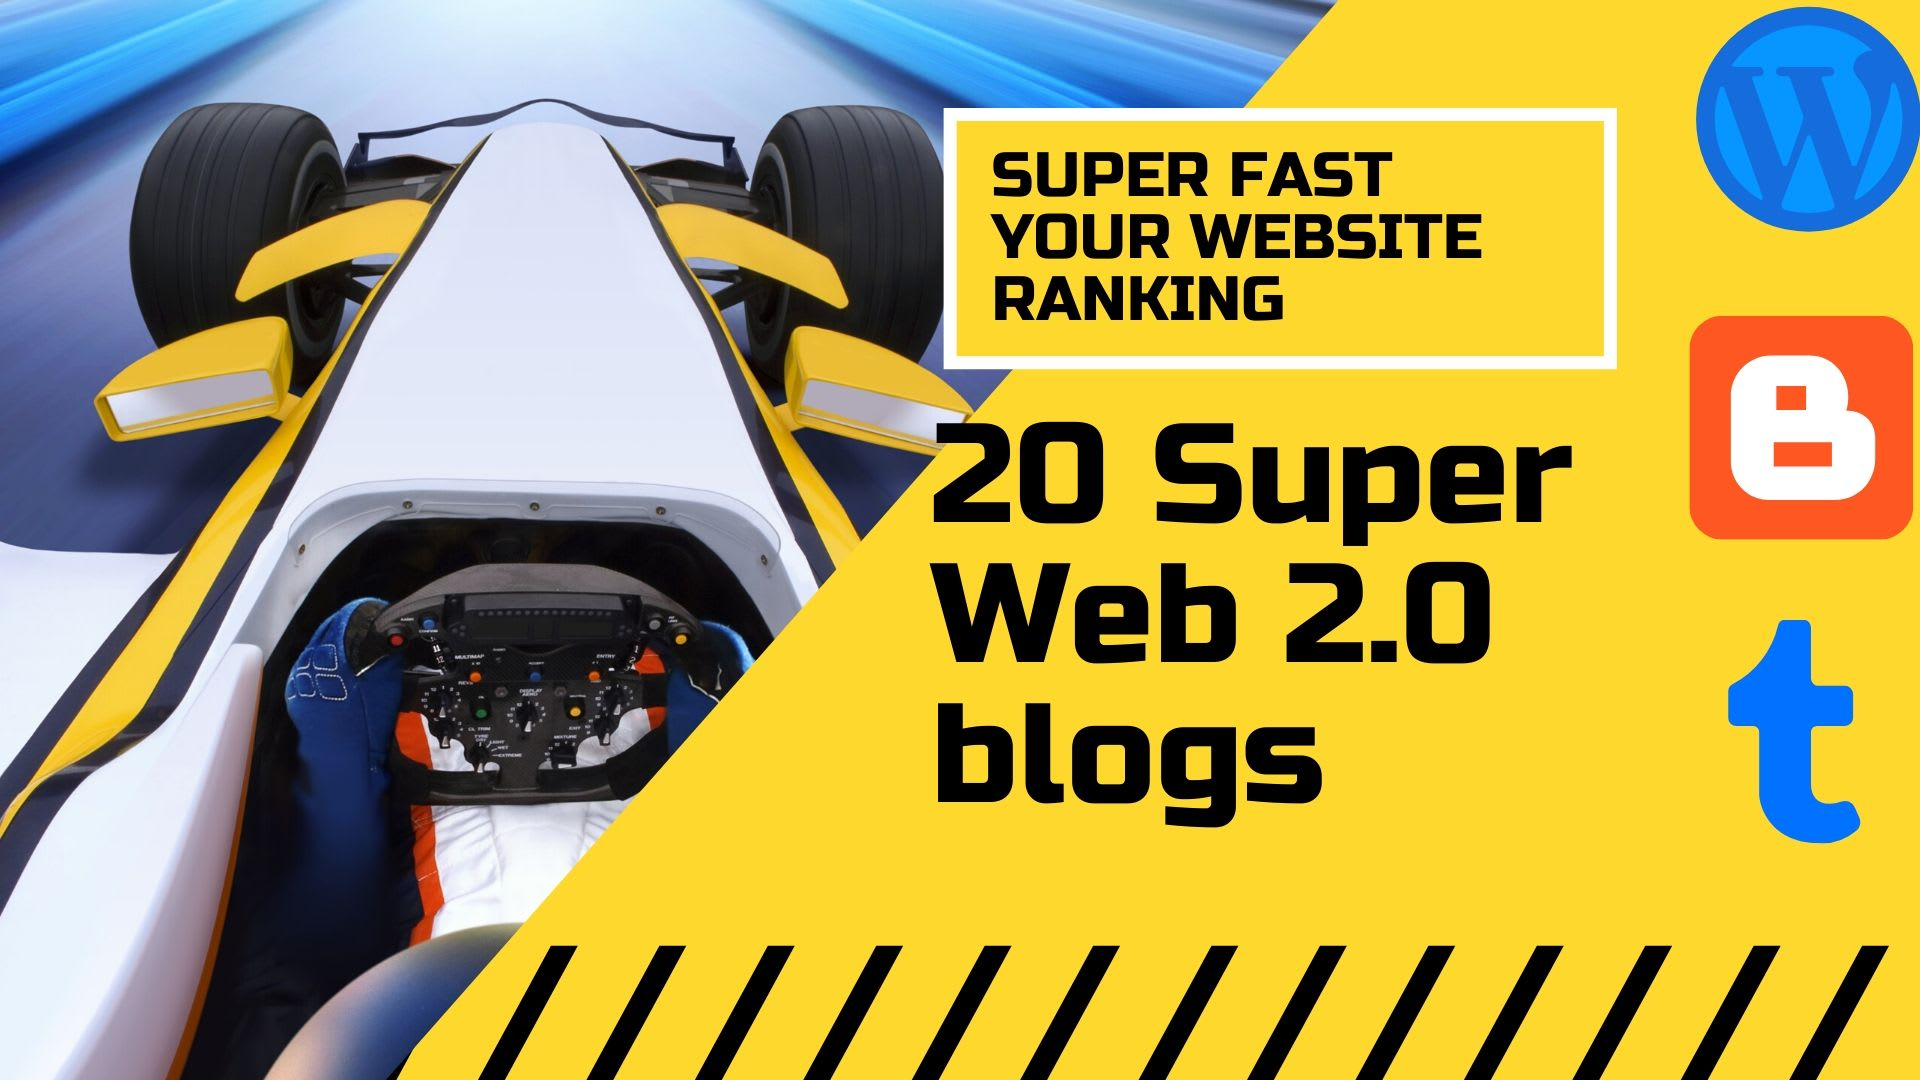 create manually 20 fully optimized web 2.0 blogs with 10 Social backlinks